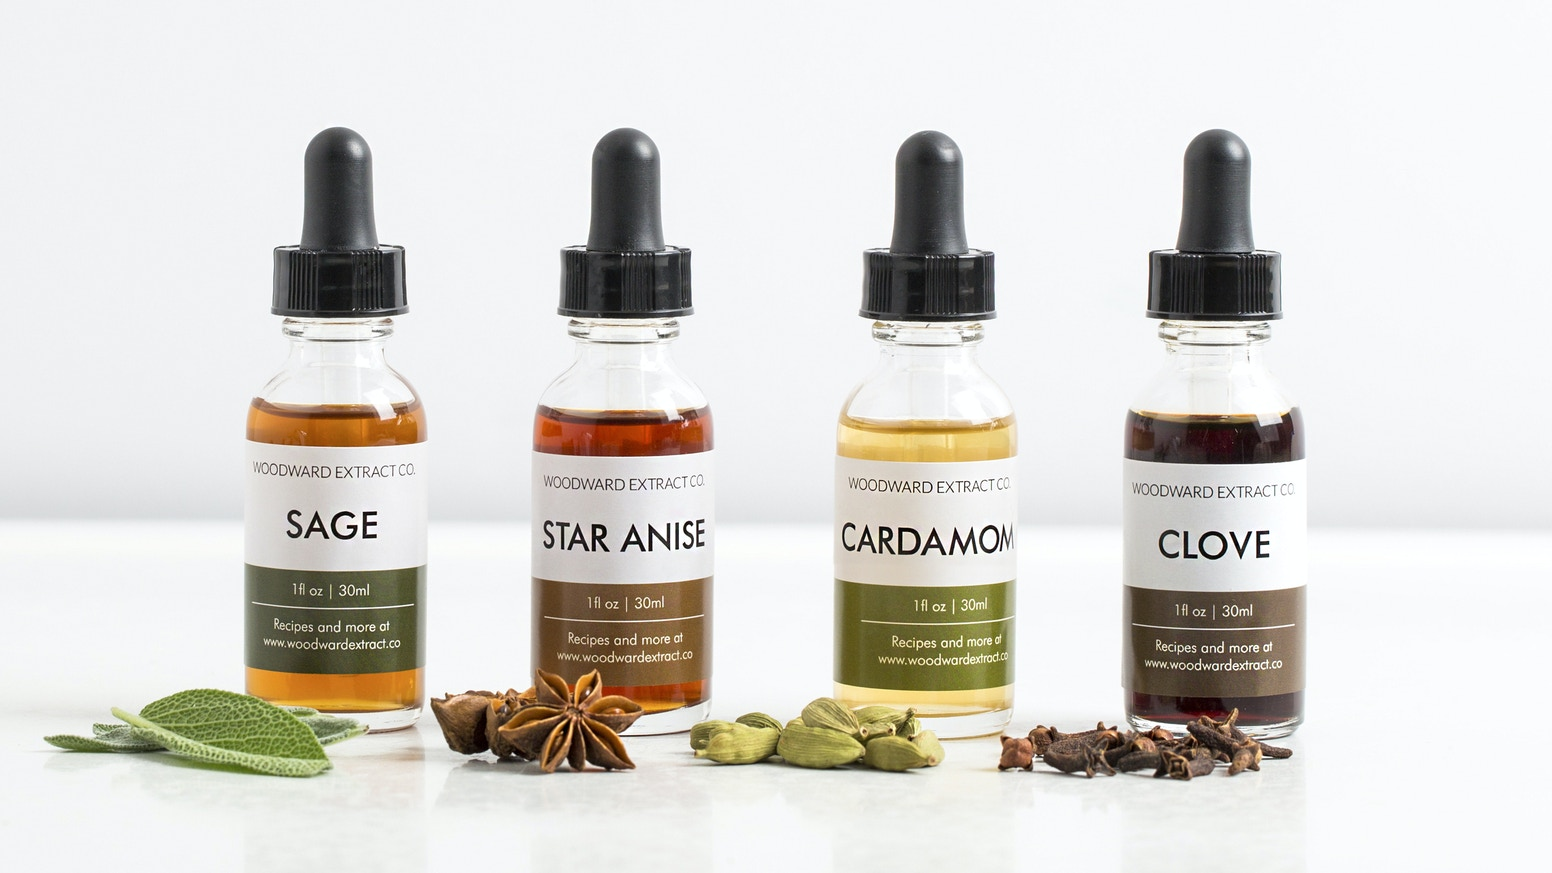 Spice up your home bar with new seasonal flavors from Woodward Extract Co. and exclusive recipes from Brooklyn-based distillers